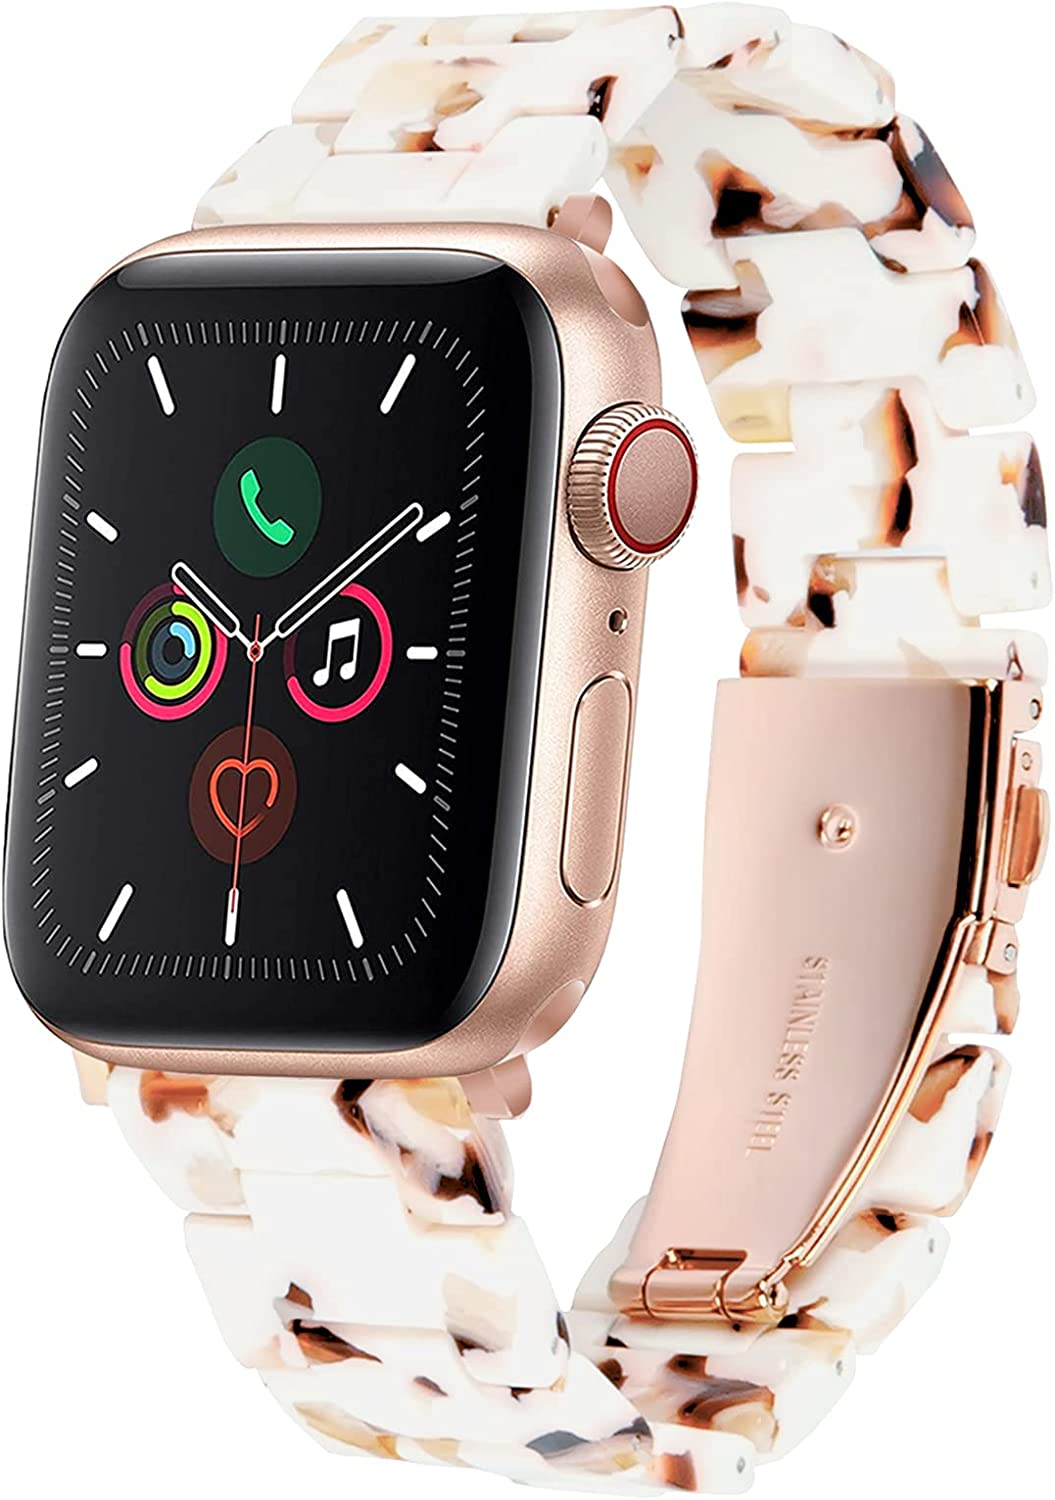 HOPO Compatible with Apple Watch Band 38mm 40mm 42mm 44mm Slim Resin Watch Strap Bracelet For Apple Watch Series 6 Replacement For iWatch Series 5/4/3/2/1/SE, Fashion Rose Gold Stainless Steel Buckle Adjustable